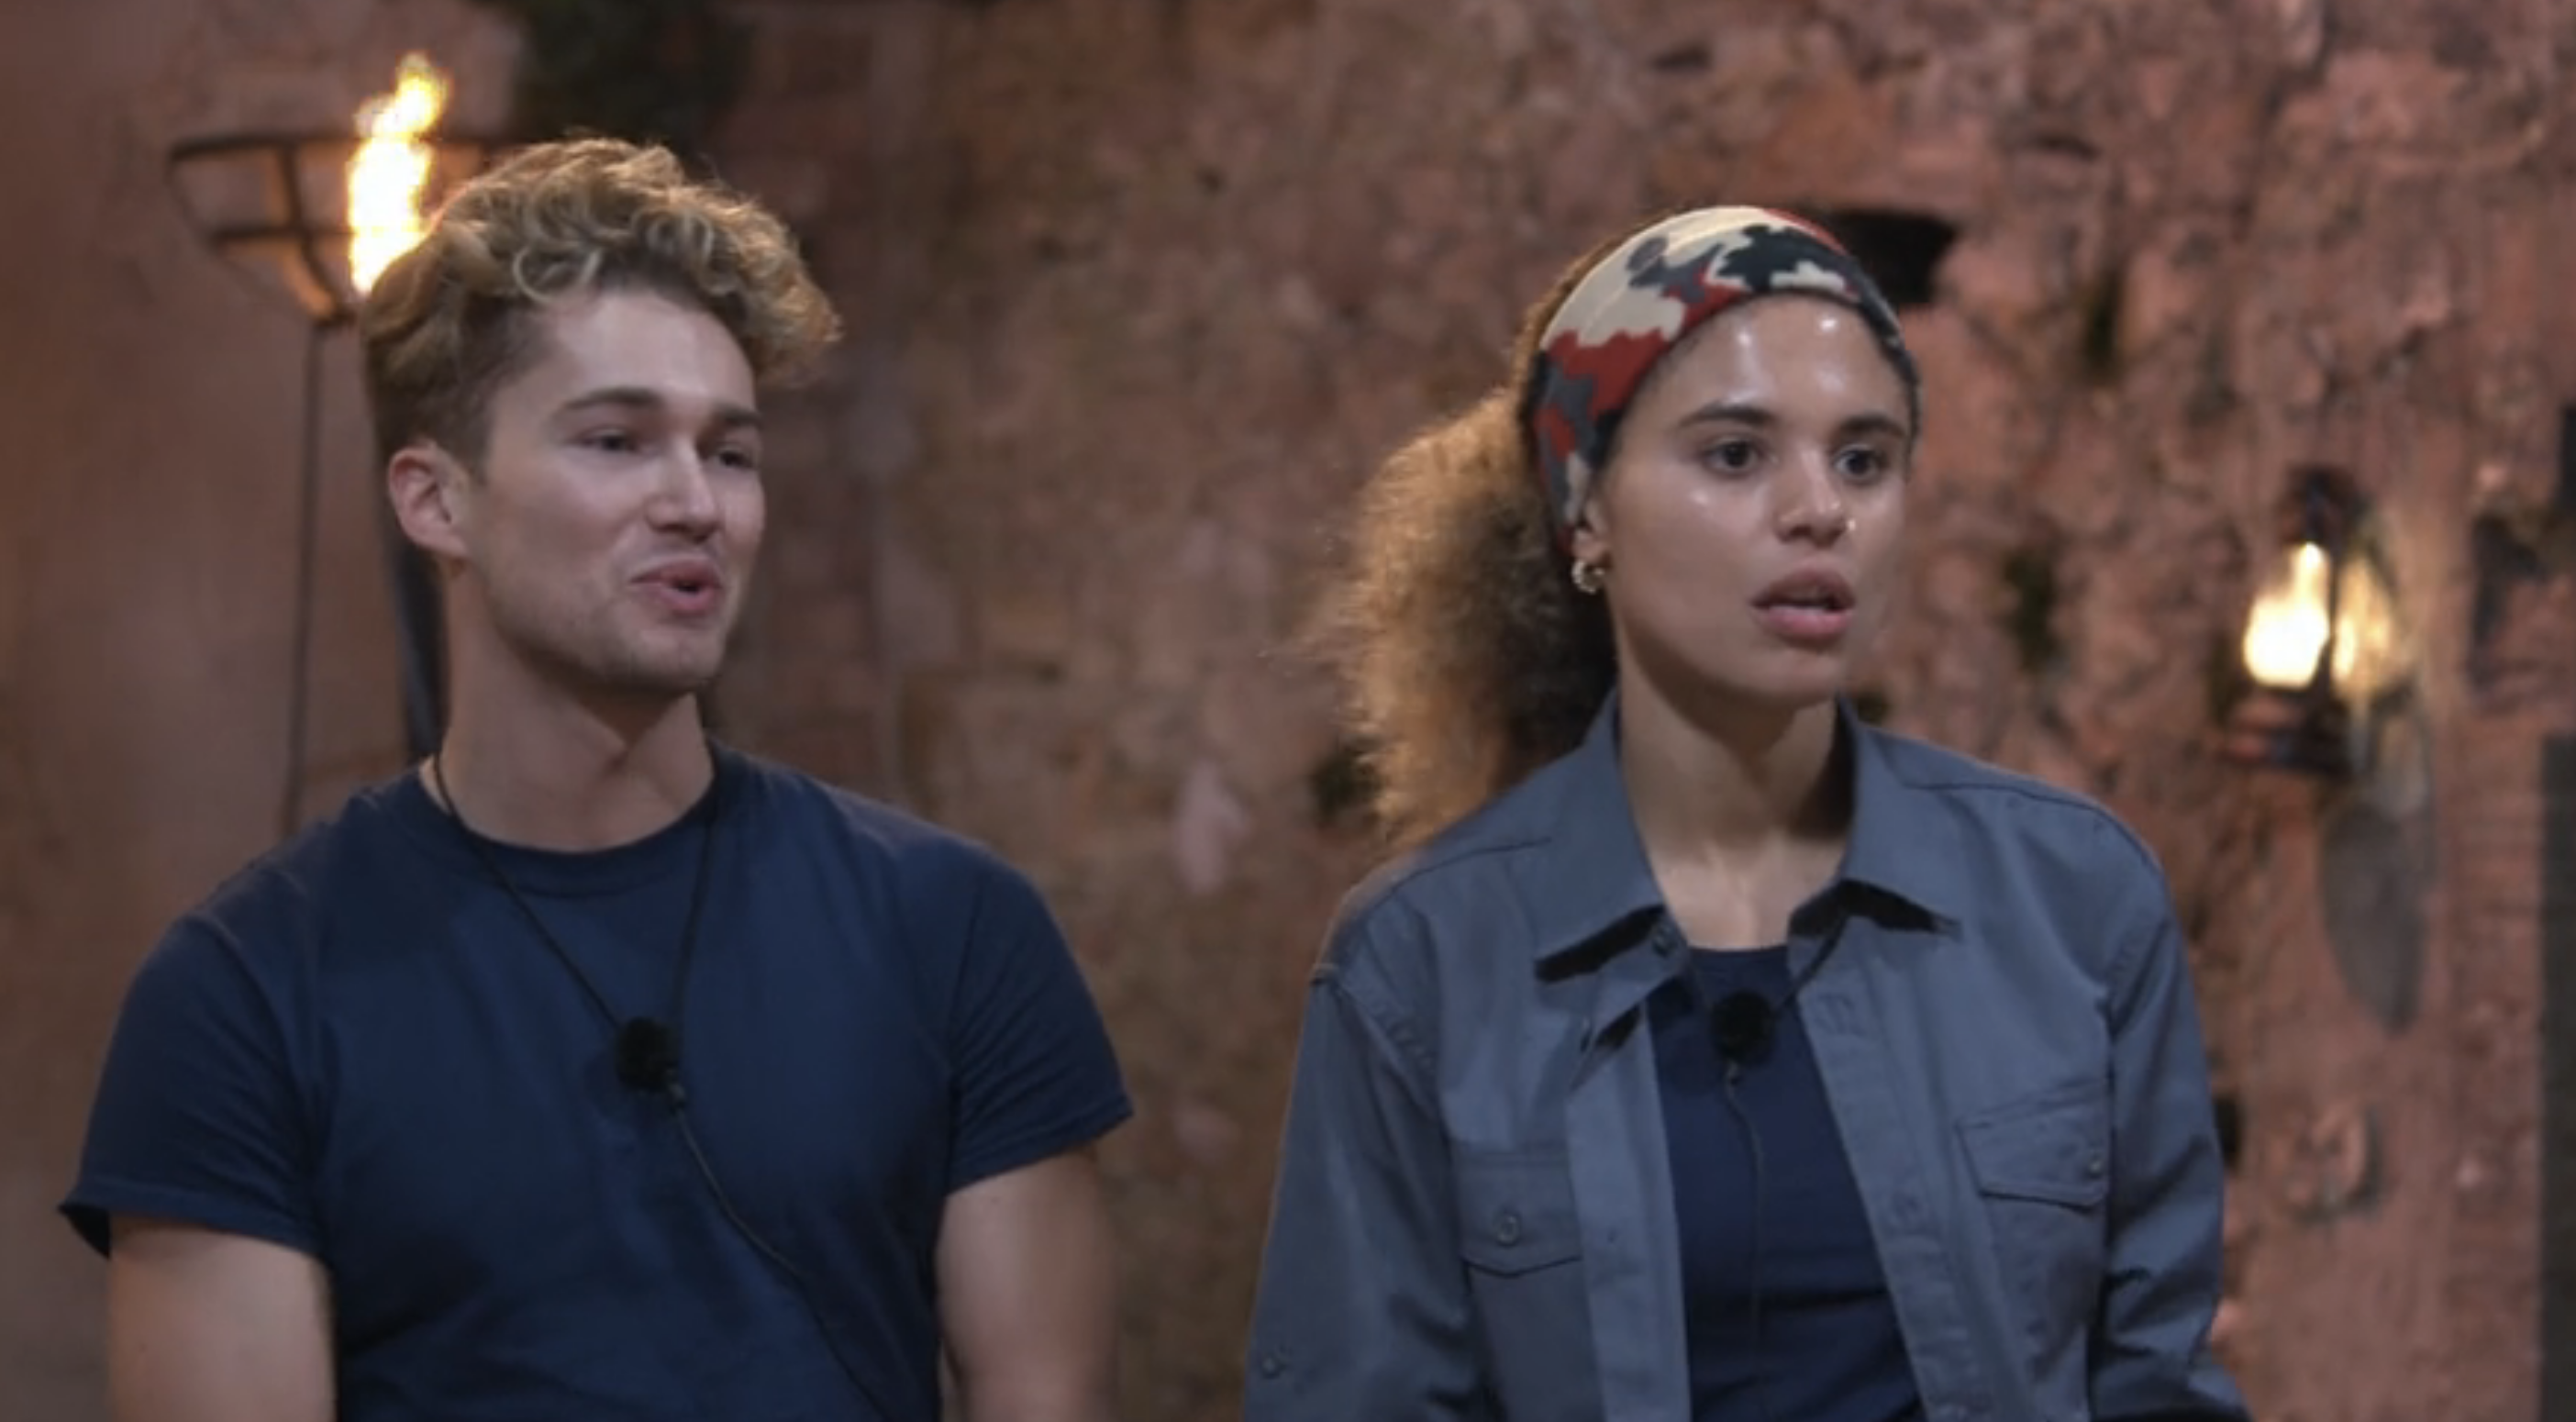 I'm A Celebrity, 2020, pay, paid, cheque, money, celeb, I'm A Celeb, Get Me Out of Here, Jessica Plummer, AJ Pritchard